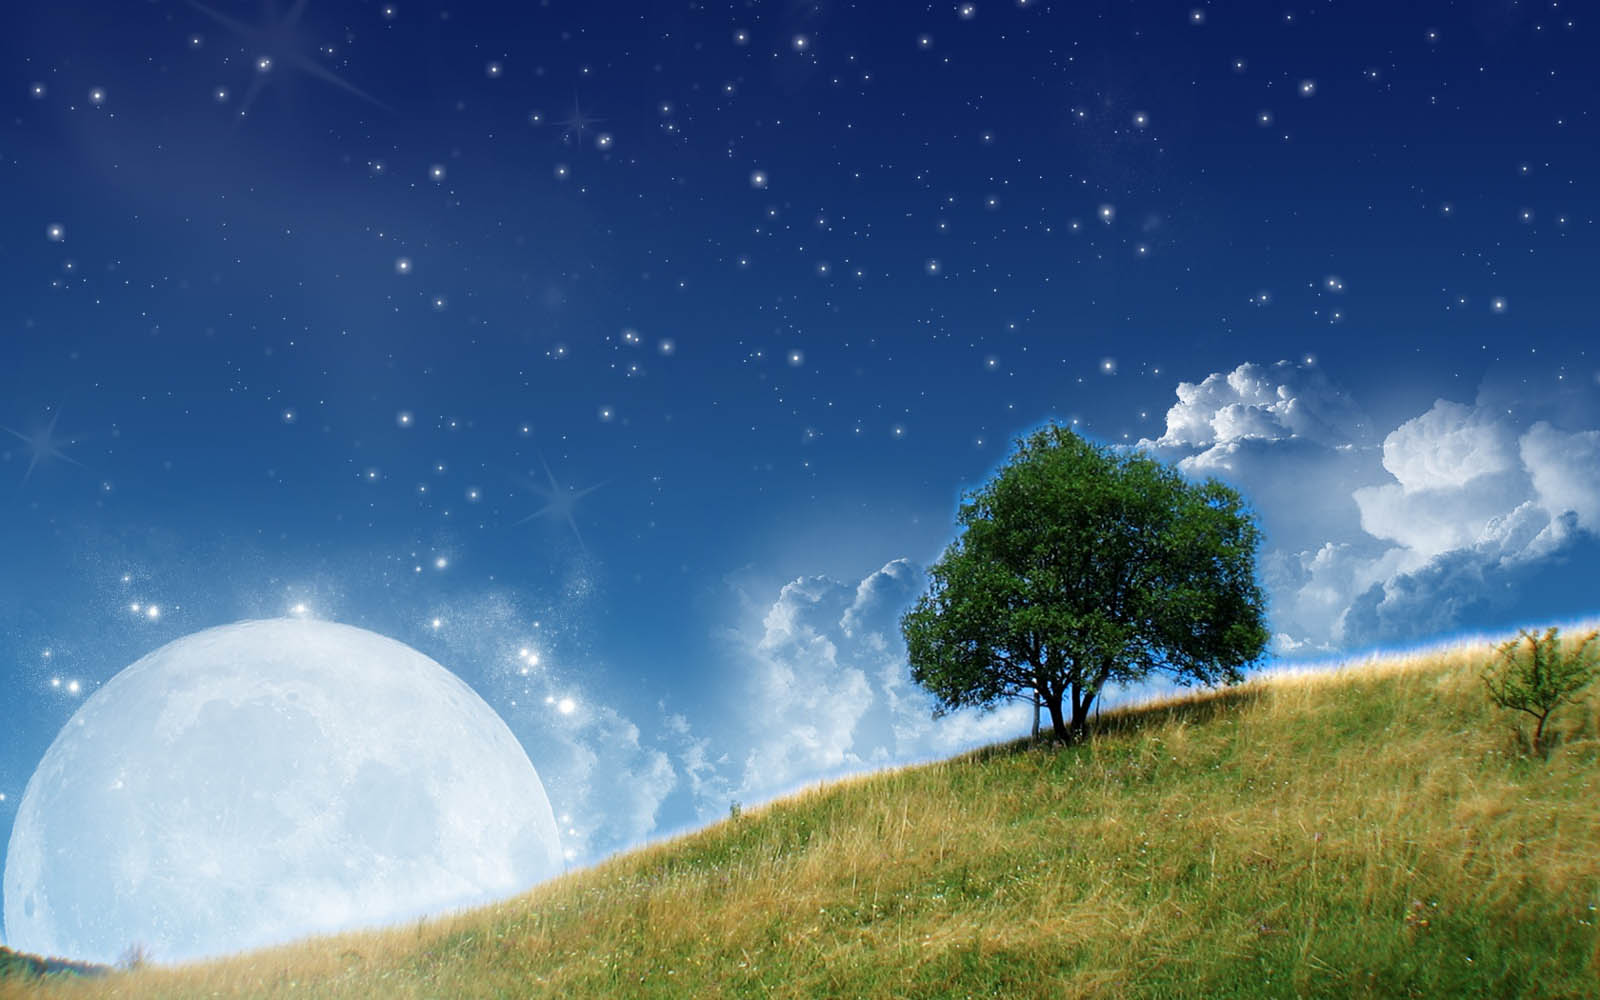 Moon Nature Wallpapers Desktop Wallpaper 1600x1000